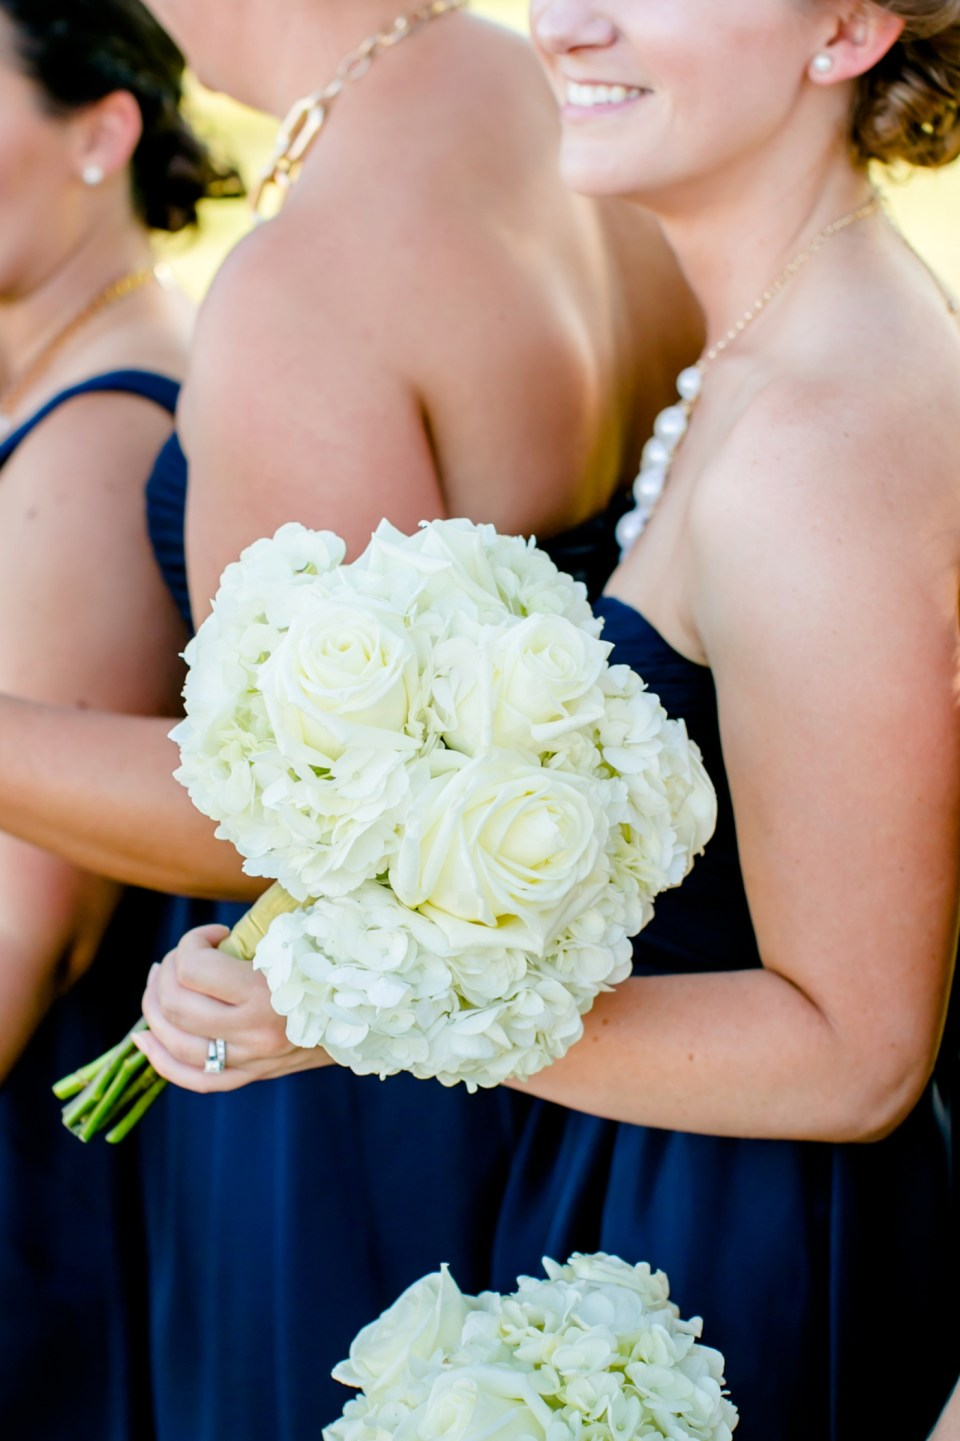 Wedding-Bouquet-Inspiration-Flowers-Bridal-Bridesmaids373